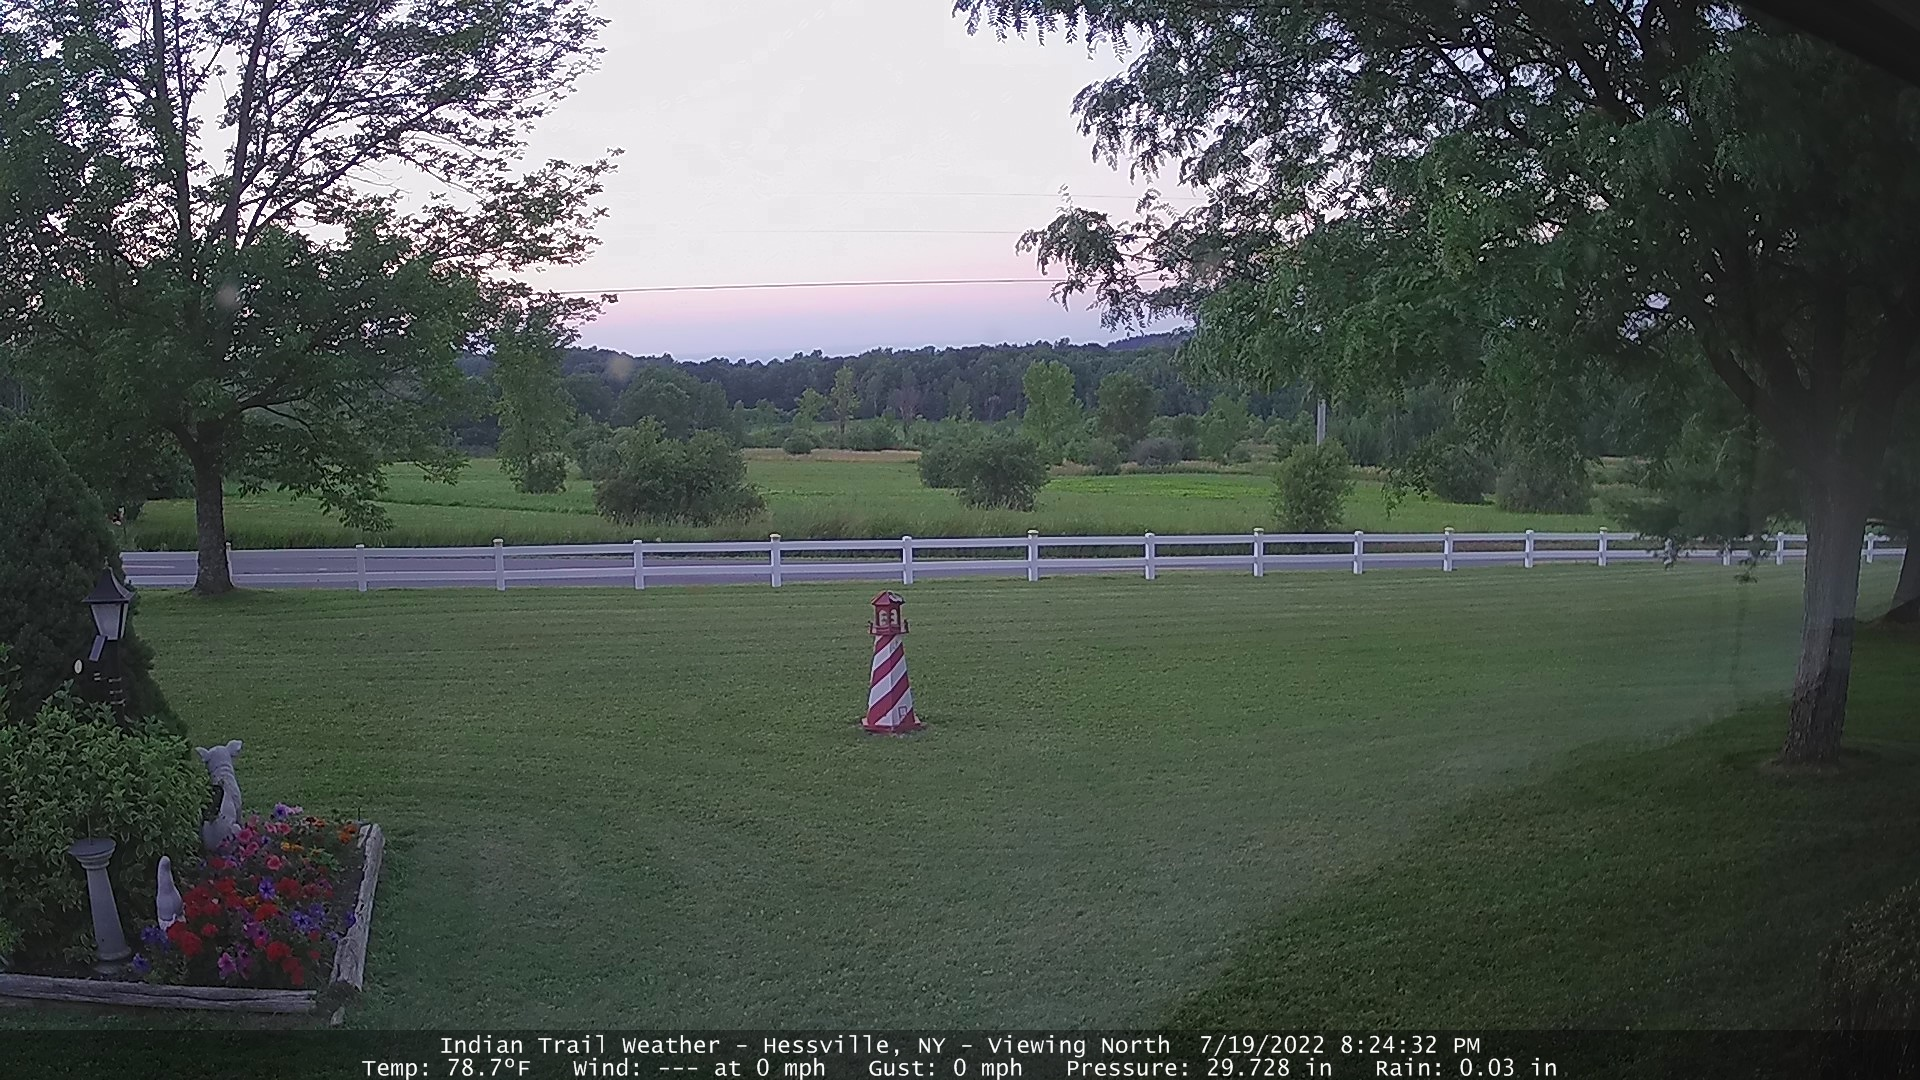 Indian Trail Weather Webcam - Viewing North